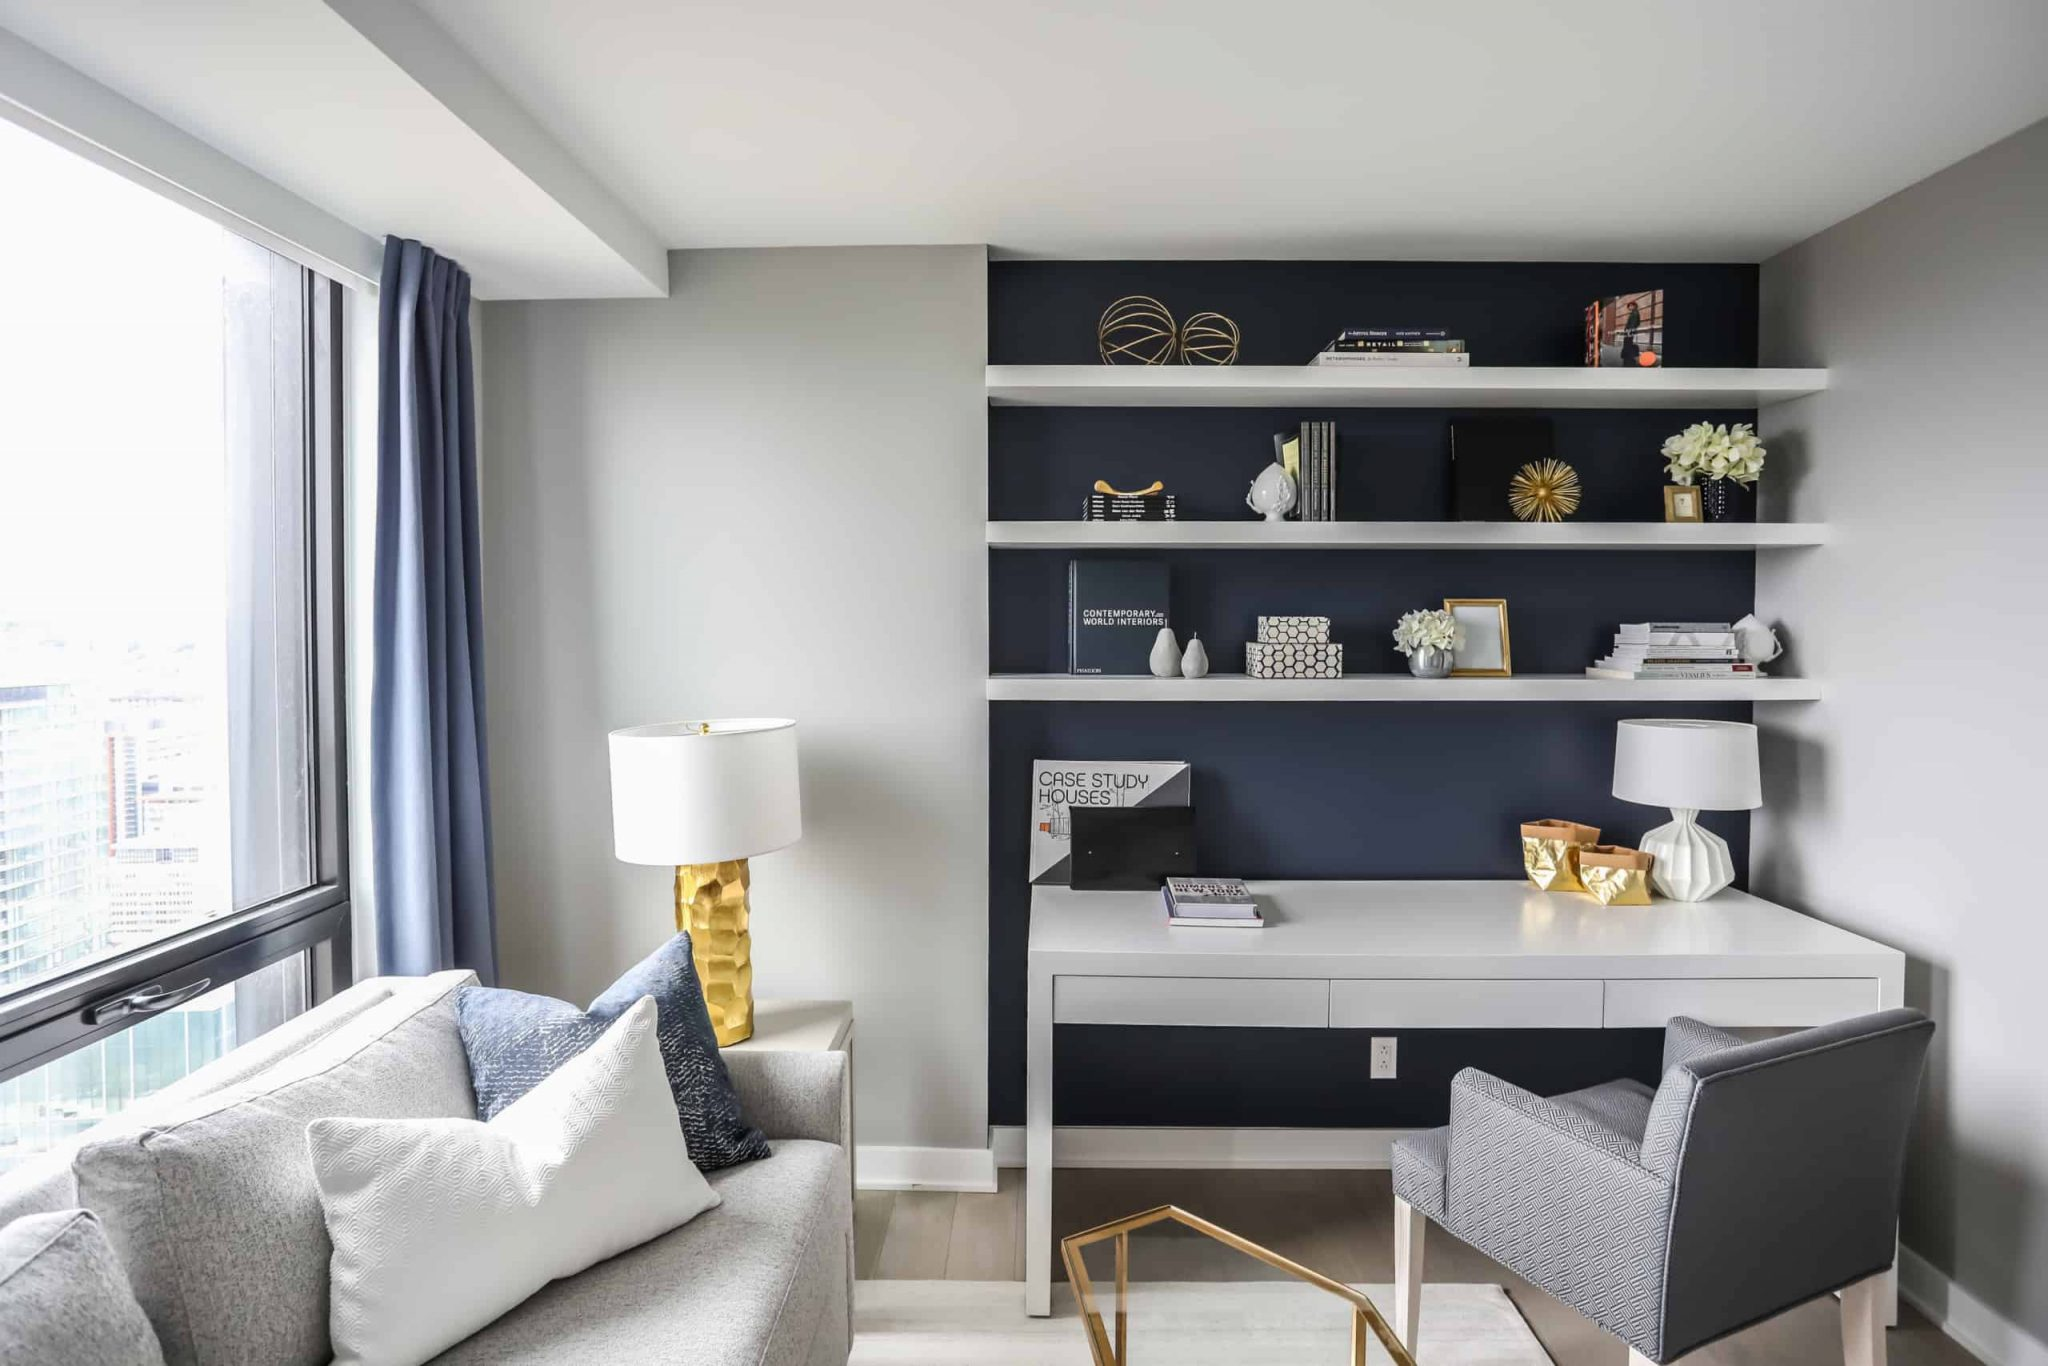 Small workspace with three shelves above it